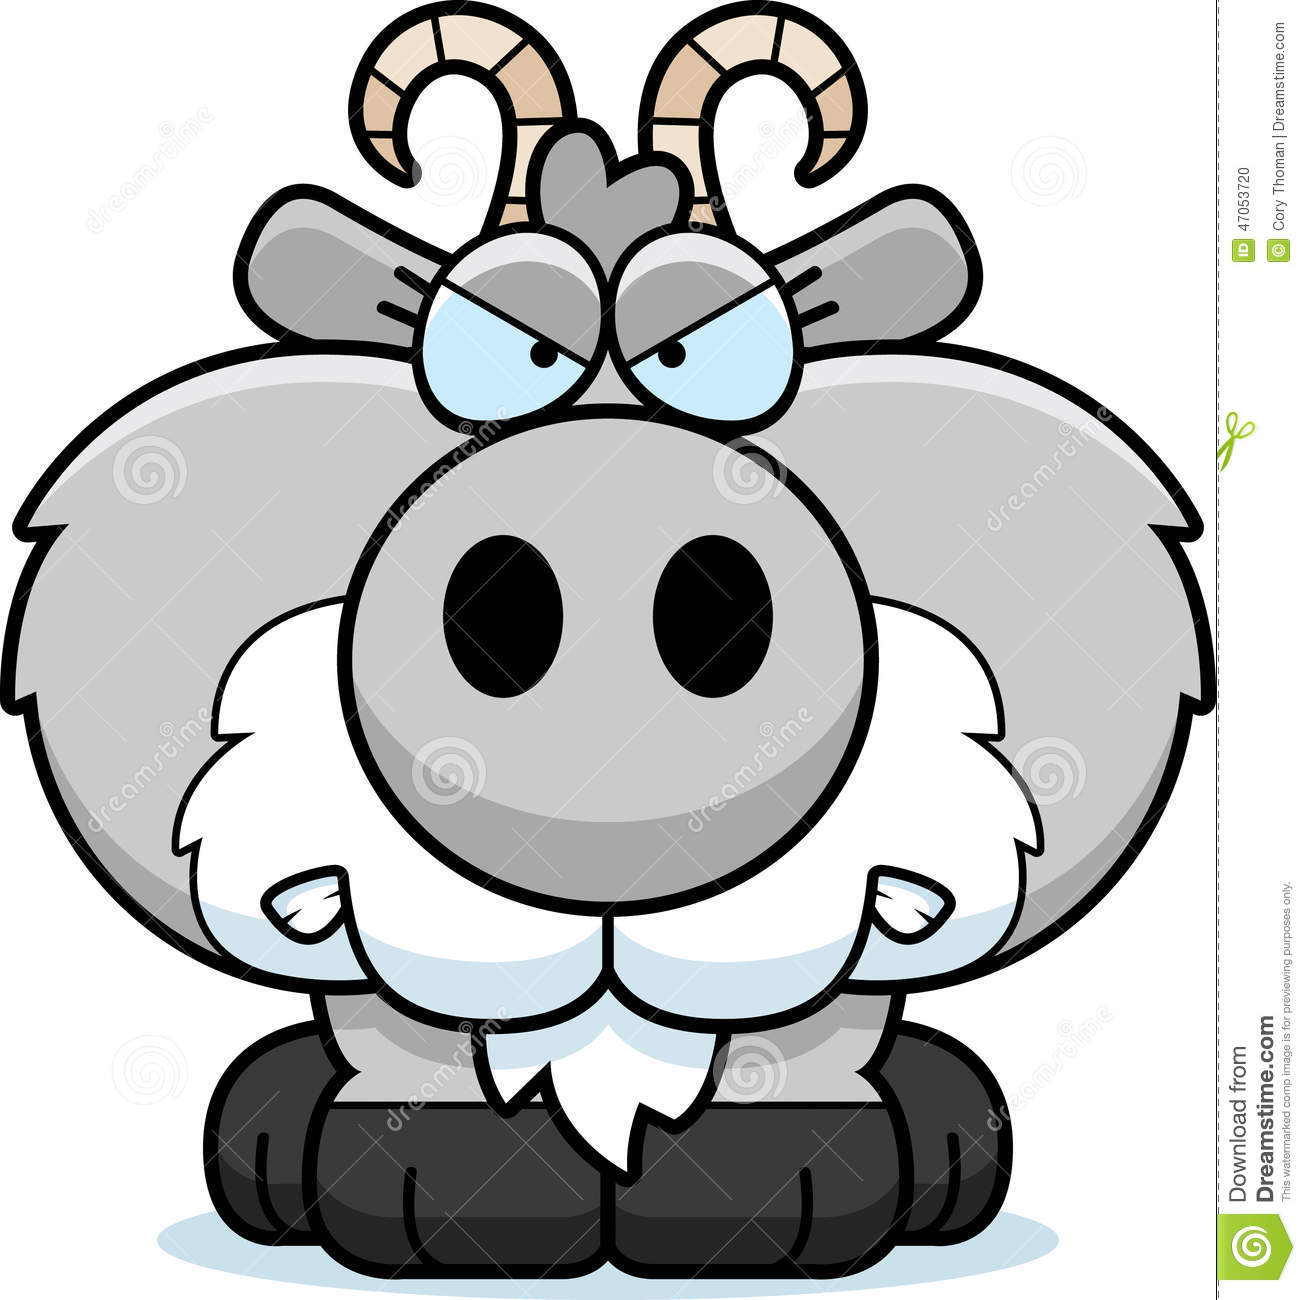 Cartoon Goat Angry Stock Vector - Image: 47053720